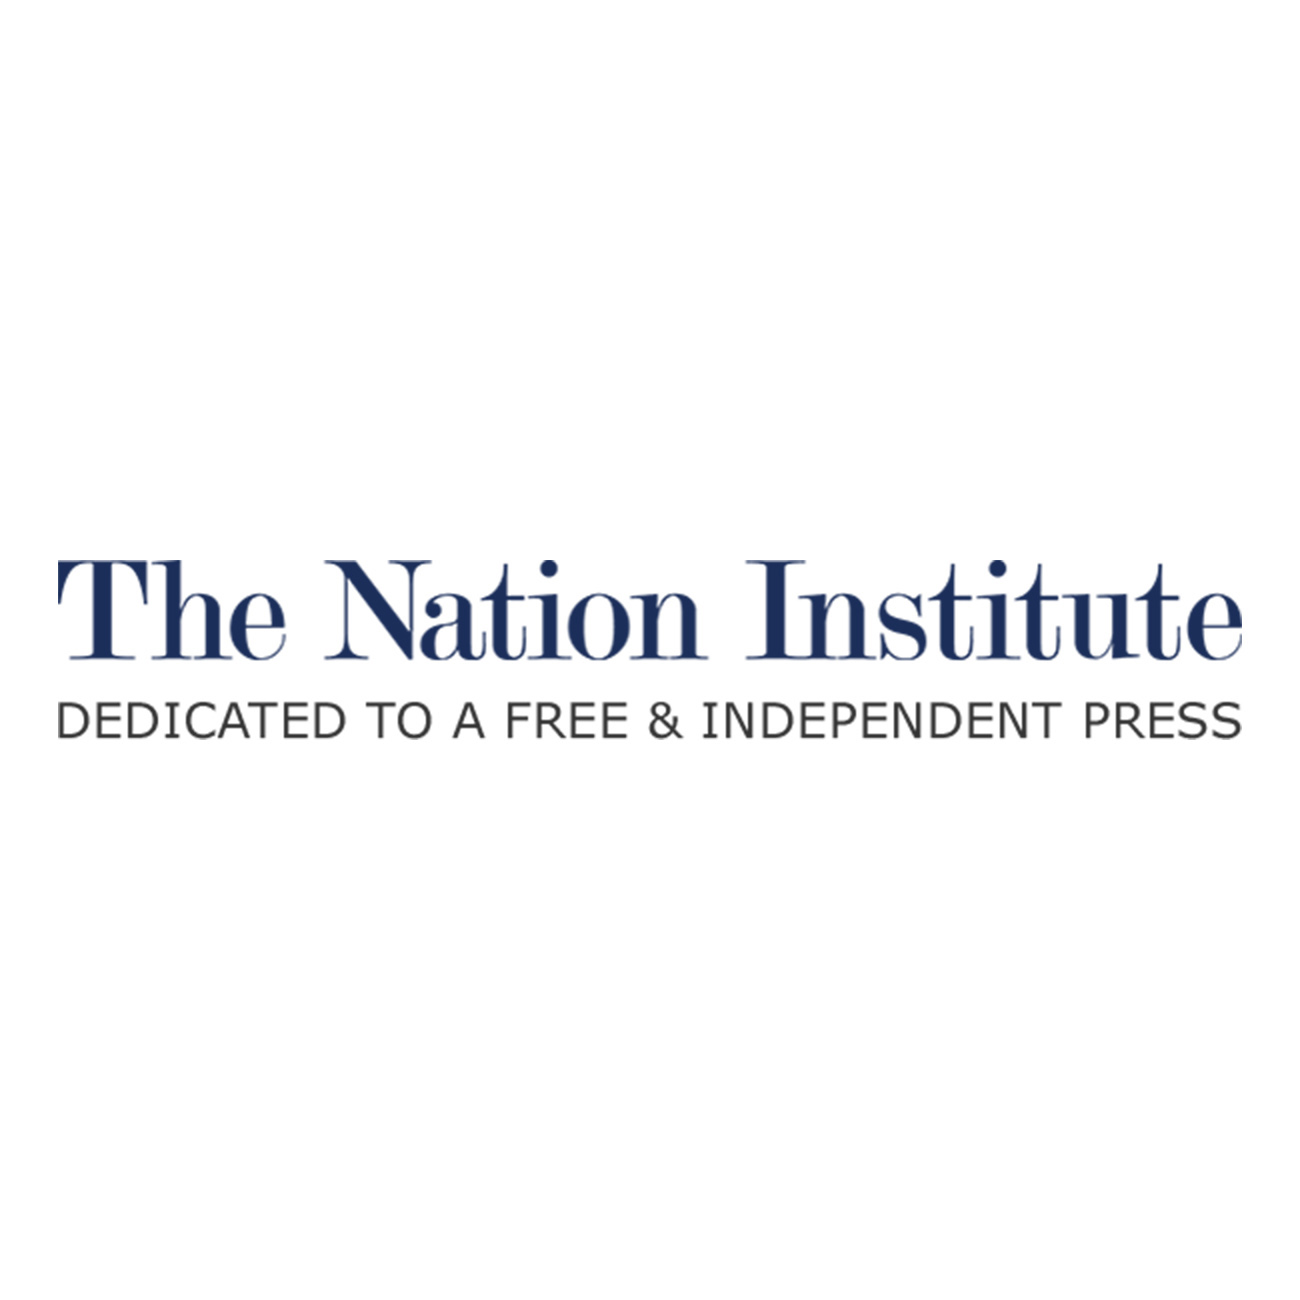 The Nation Institute